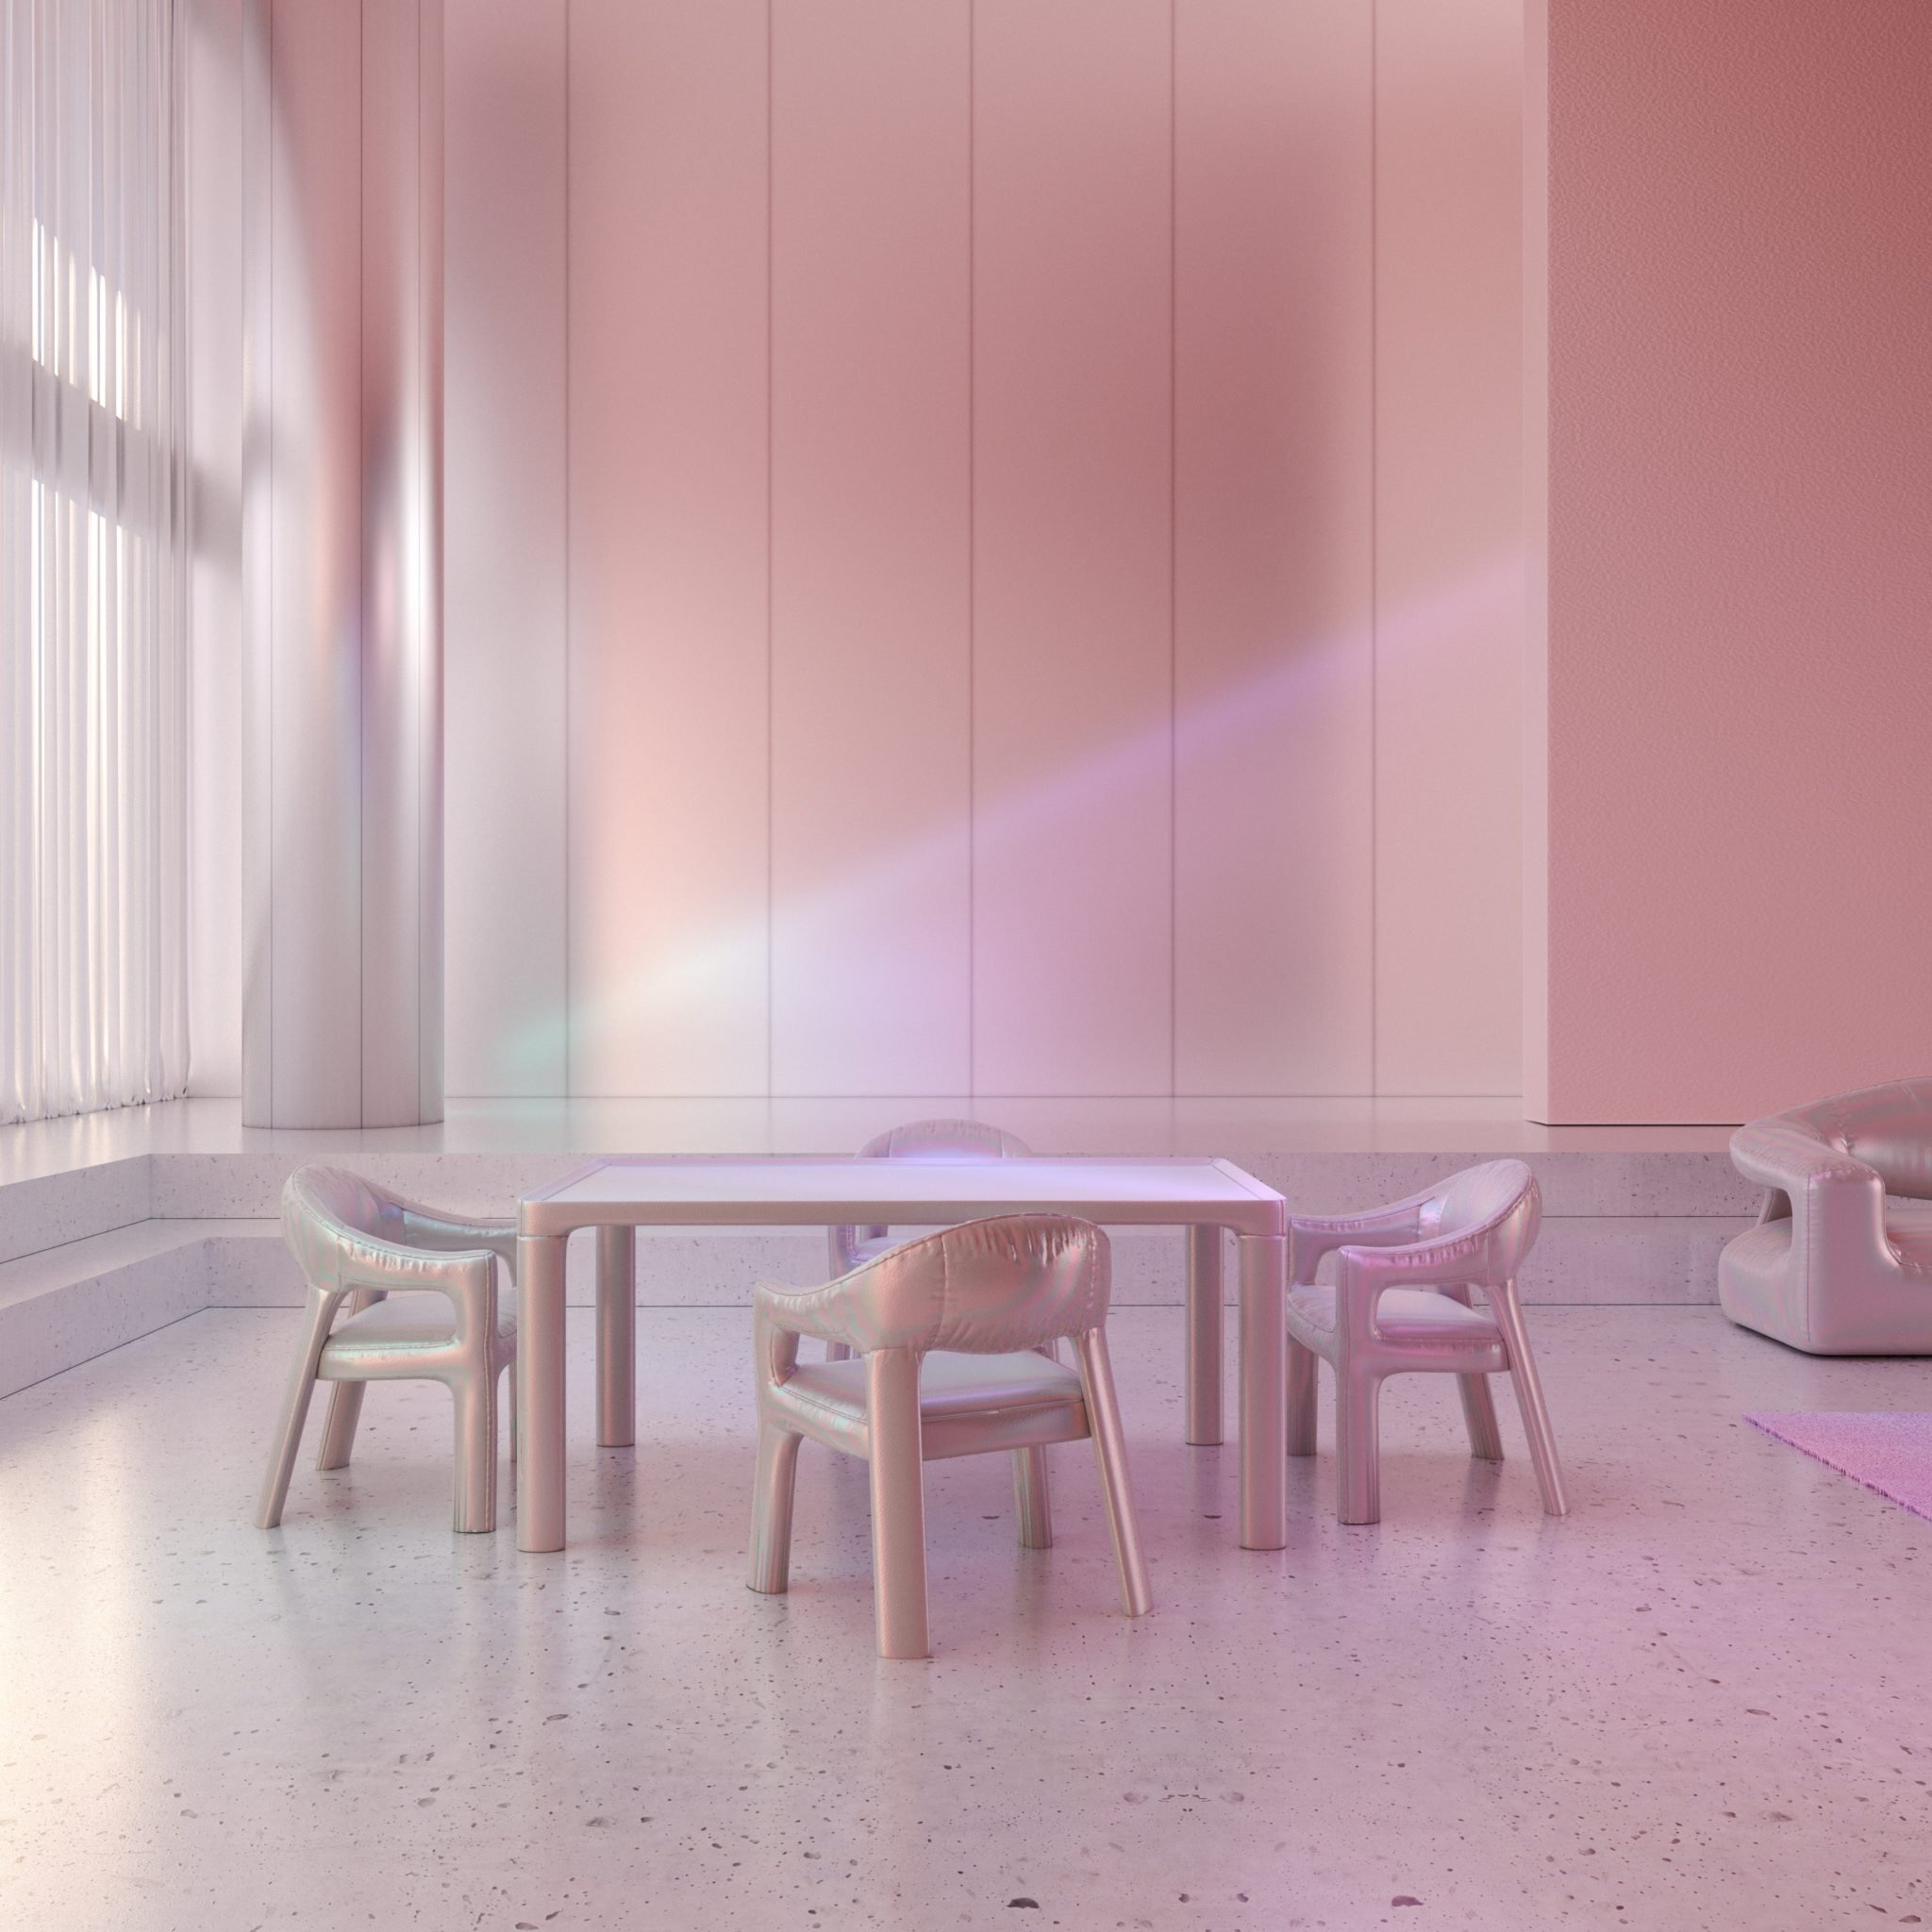 Milan 2019, FuoriSalone: Recommended events and ideal program.